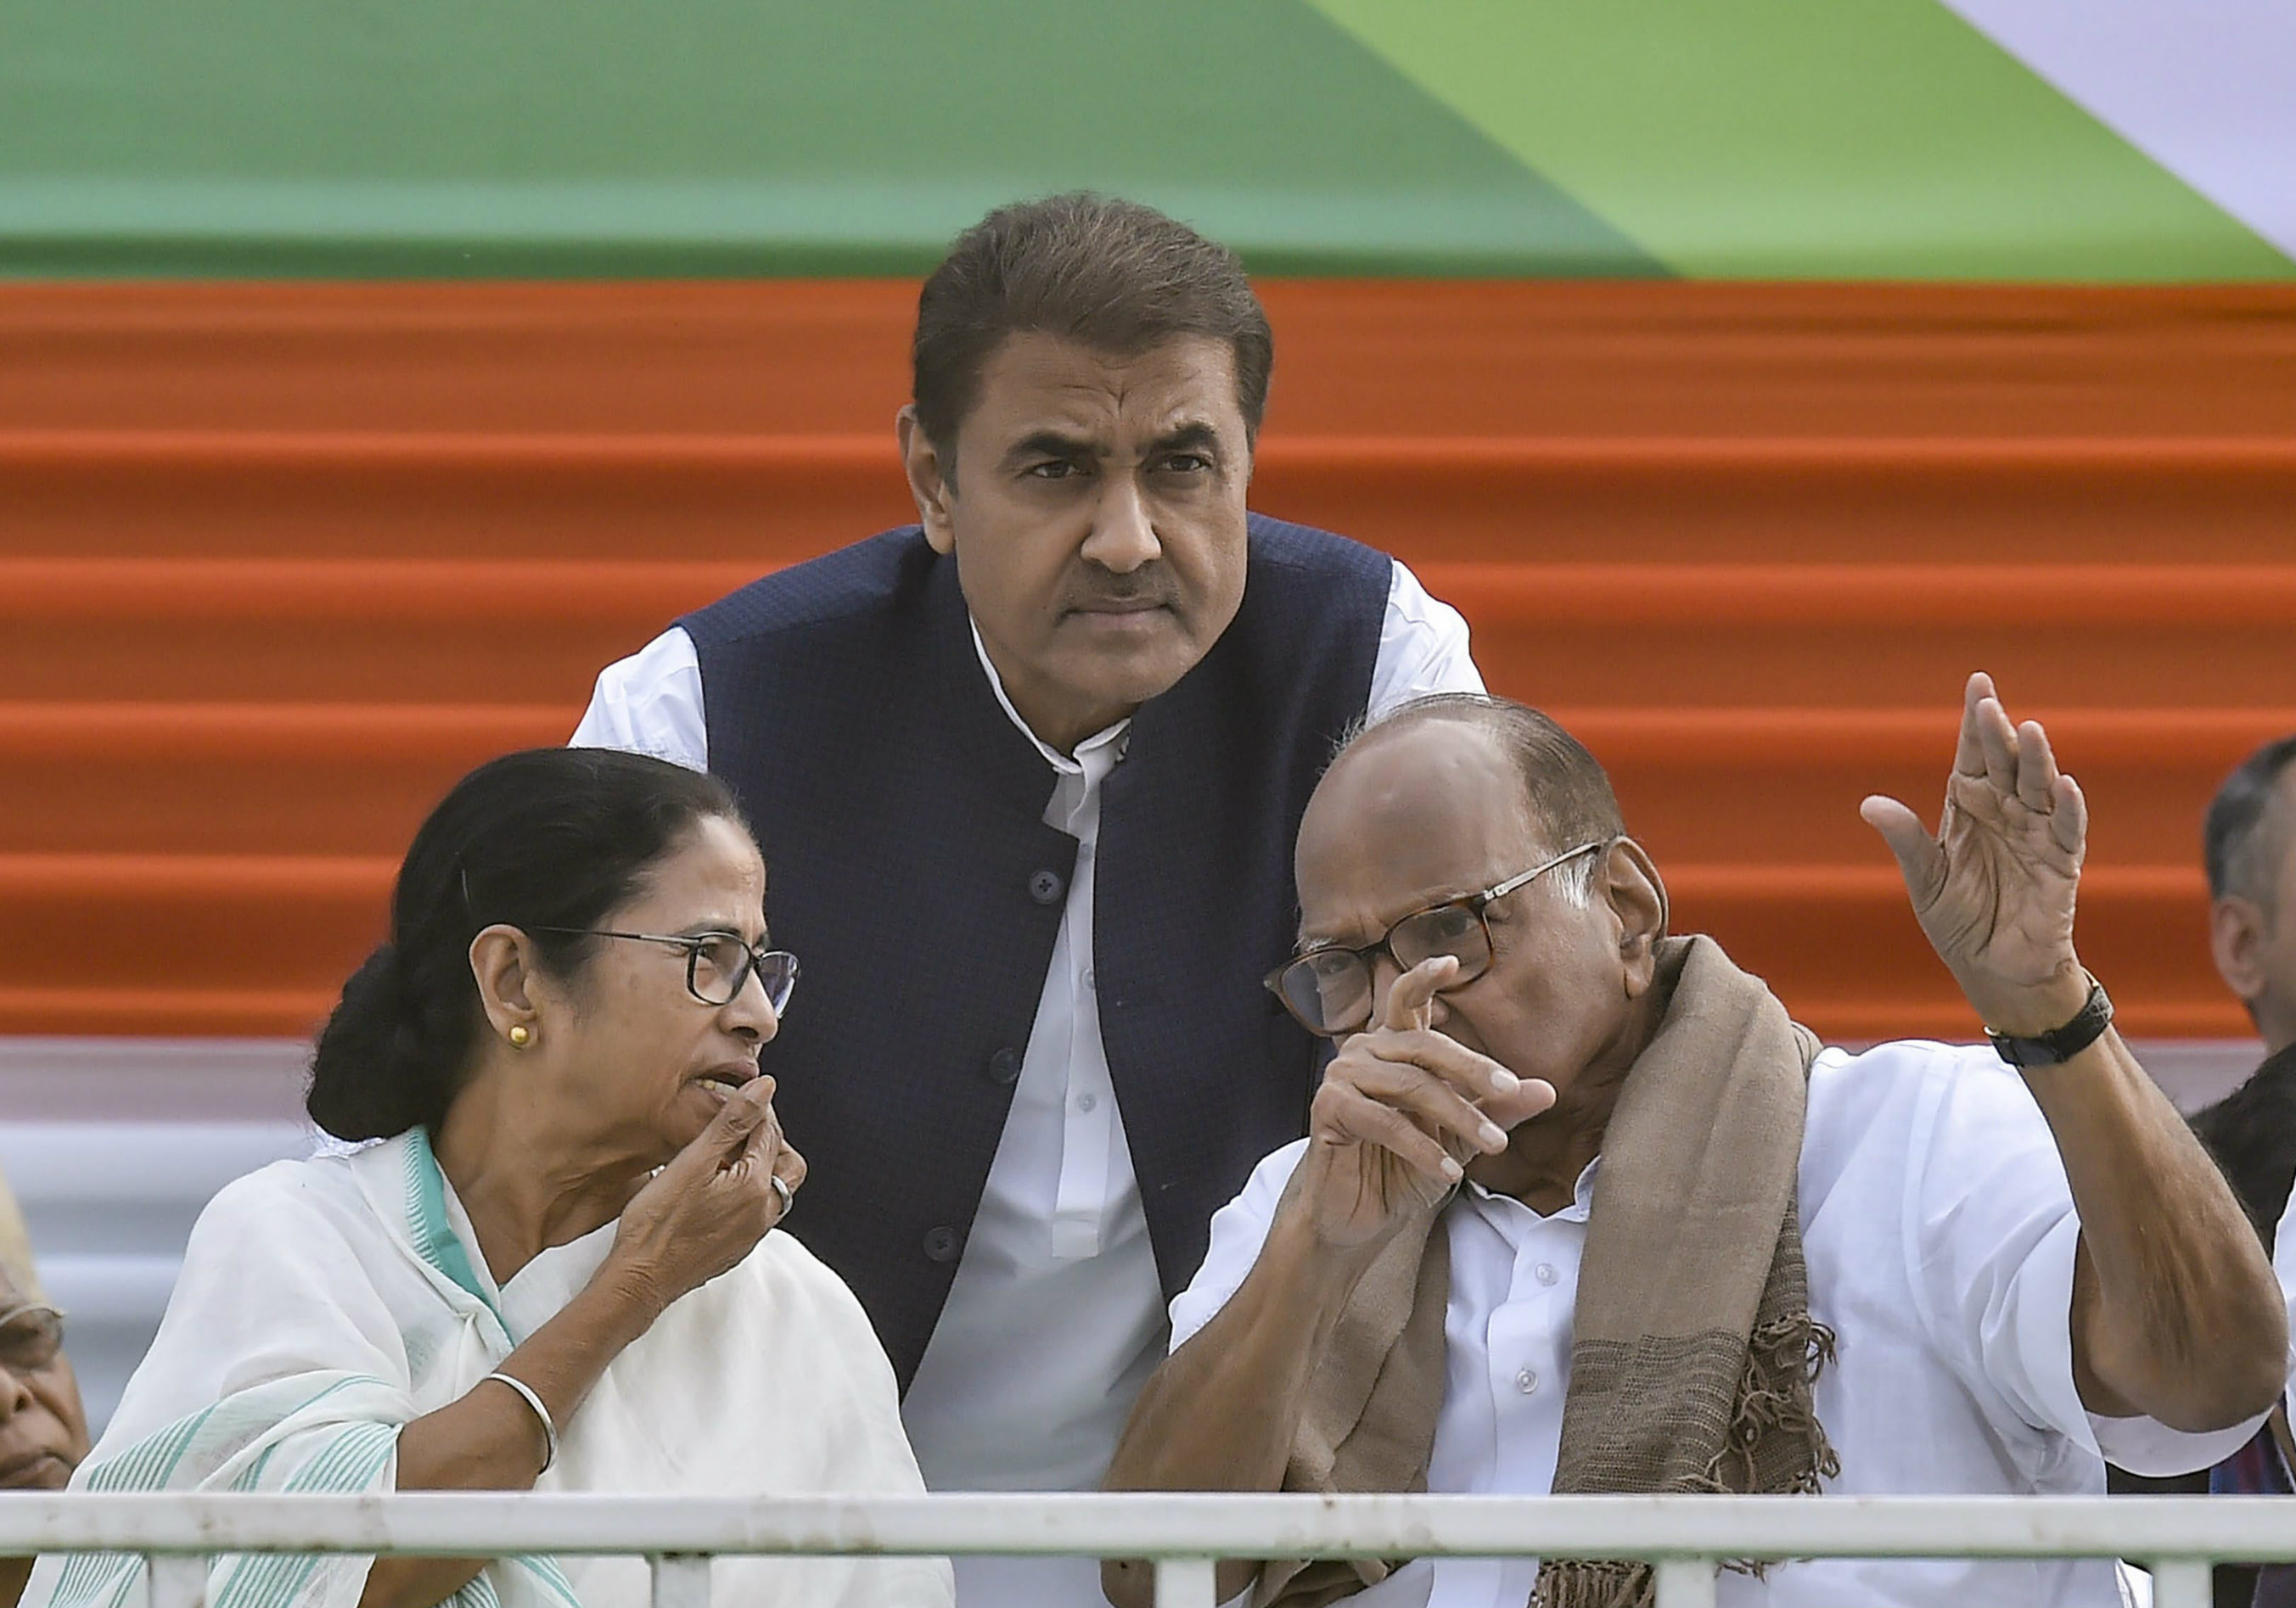 Mamata Banerjee with the NCP's Sharad Pawar (right) and Praful Patel at the rally in Calcutta on Saturday.